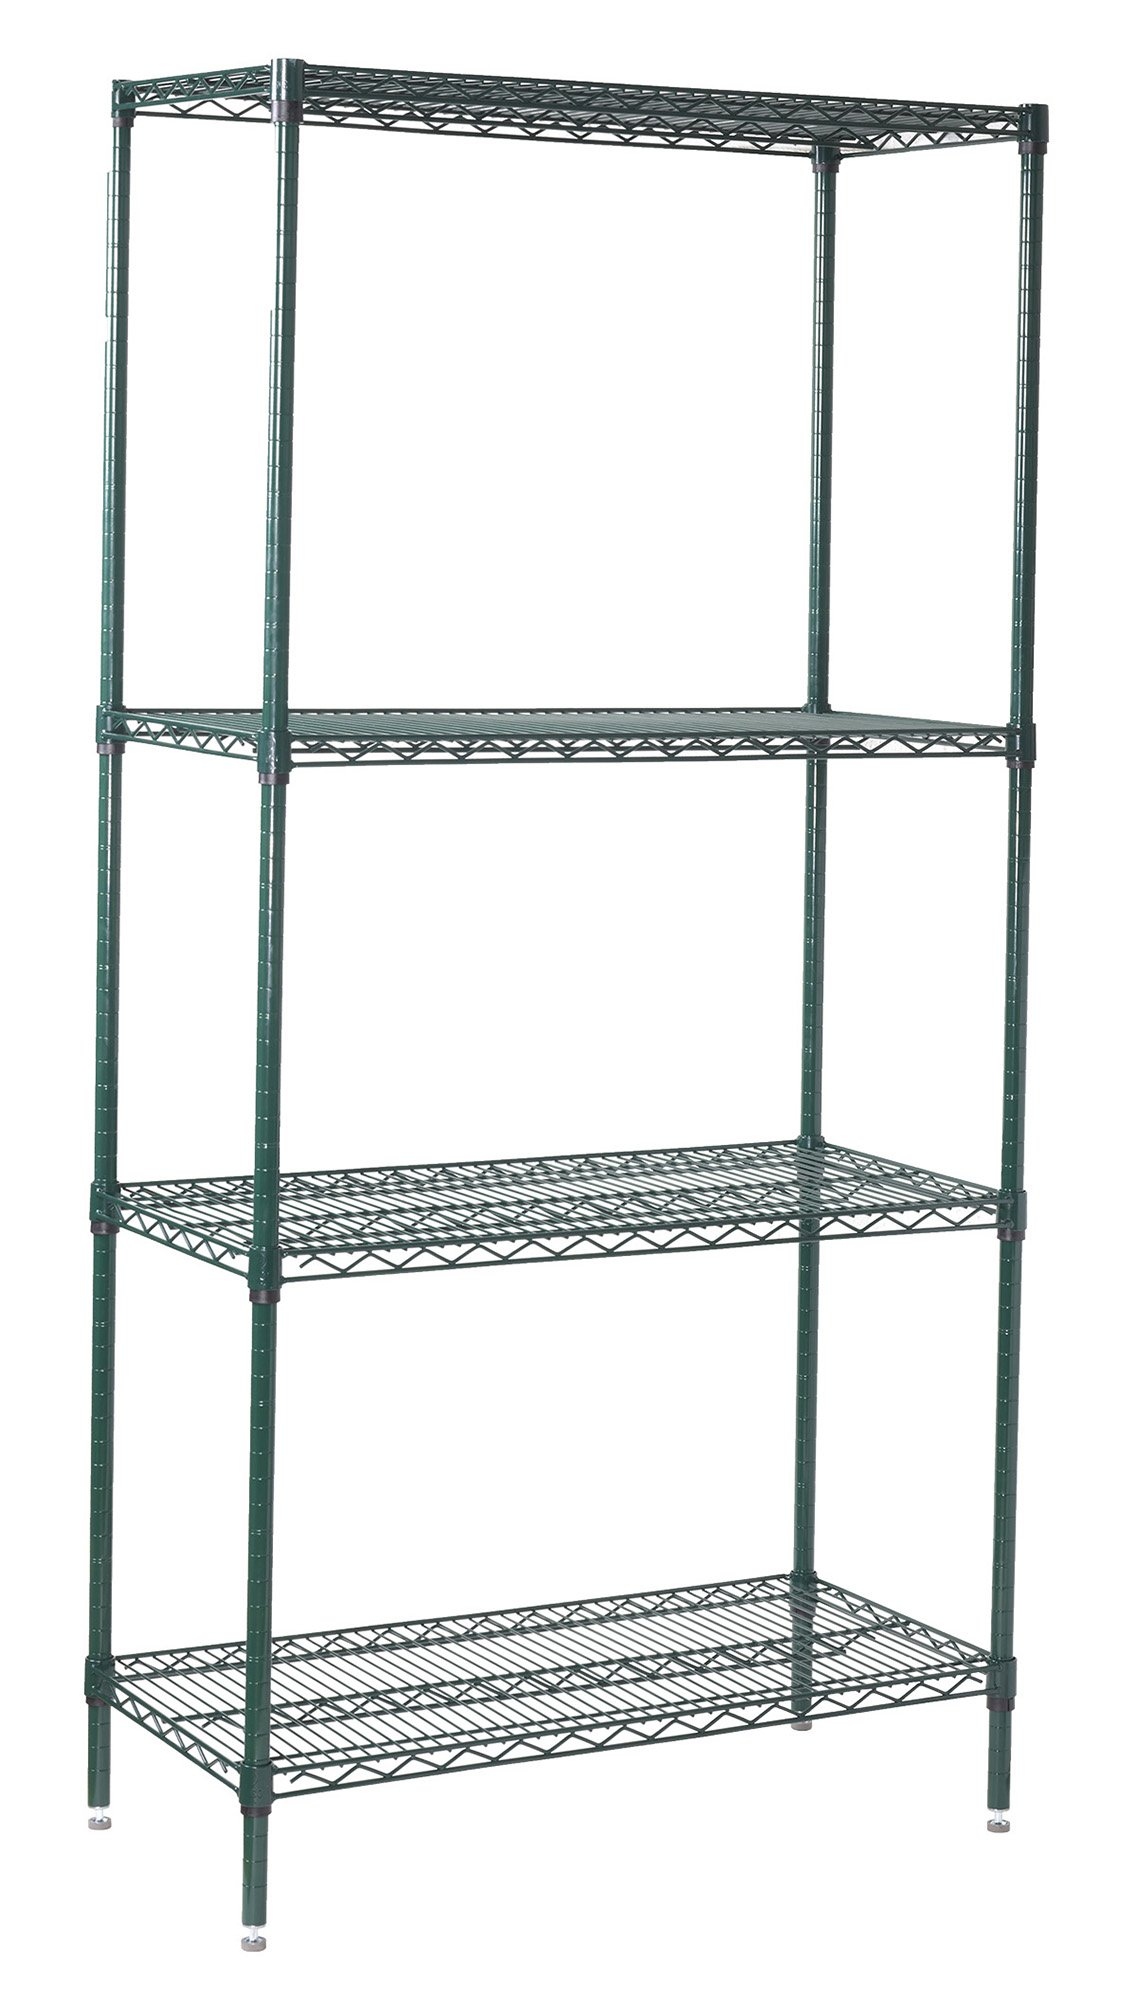 Winco VEXS-2448 4-Tier Wire Shelving Set, Epoxy Coated, 24'' X 48'' X 72'' by Winco